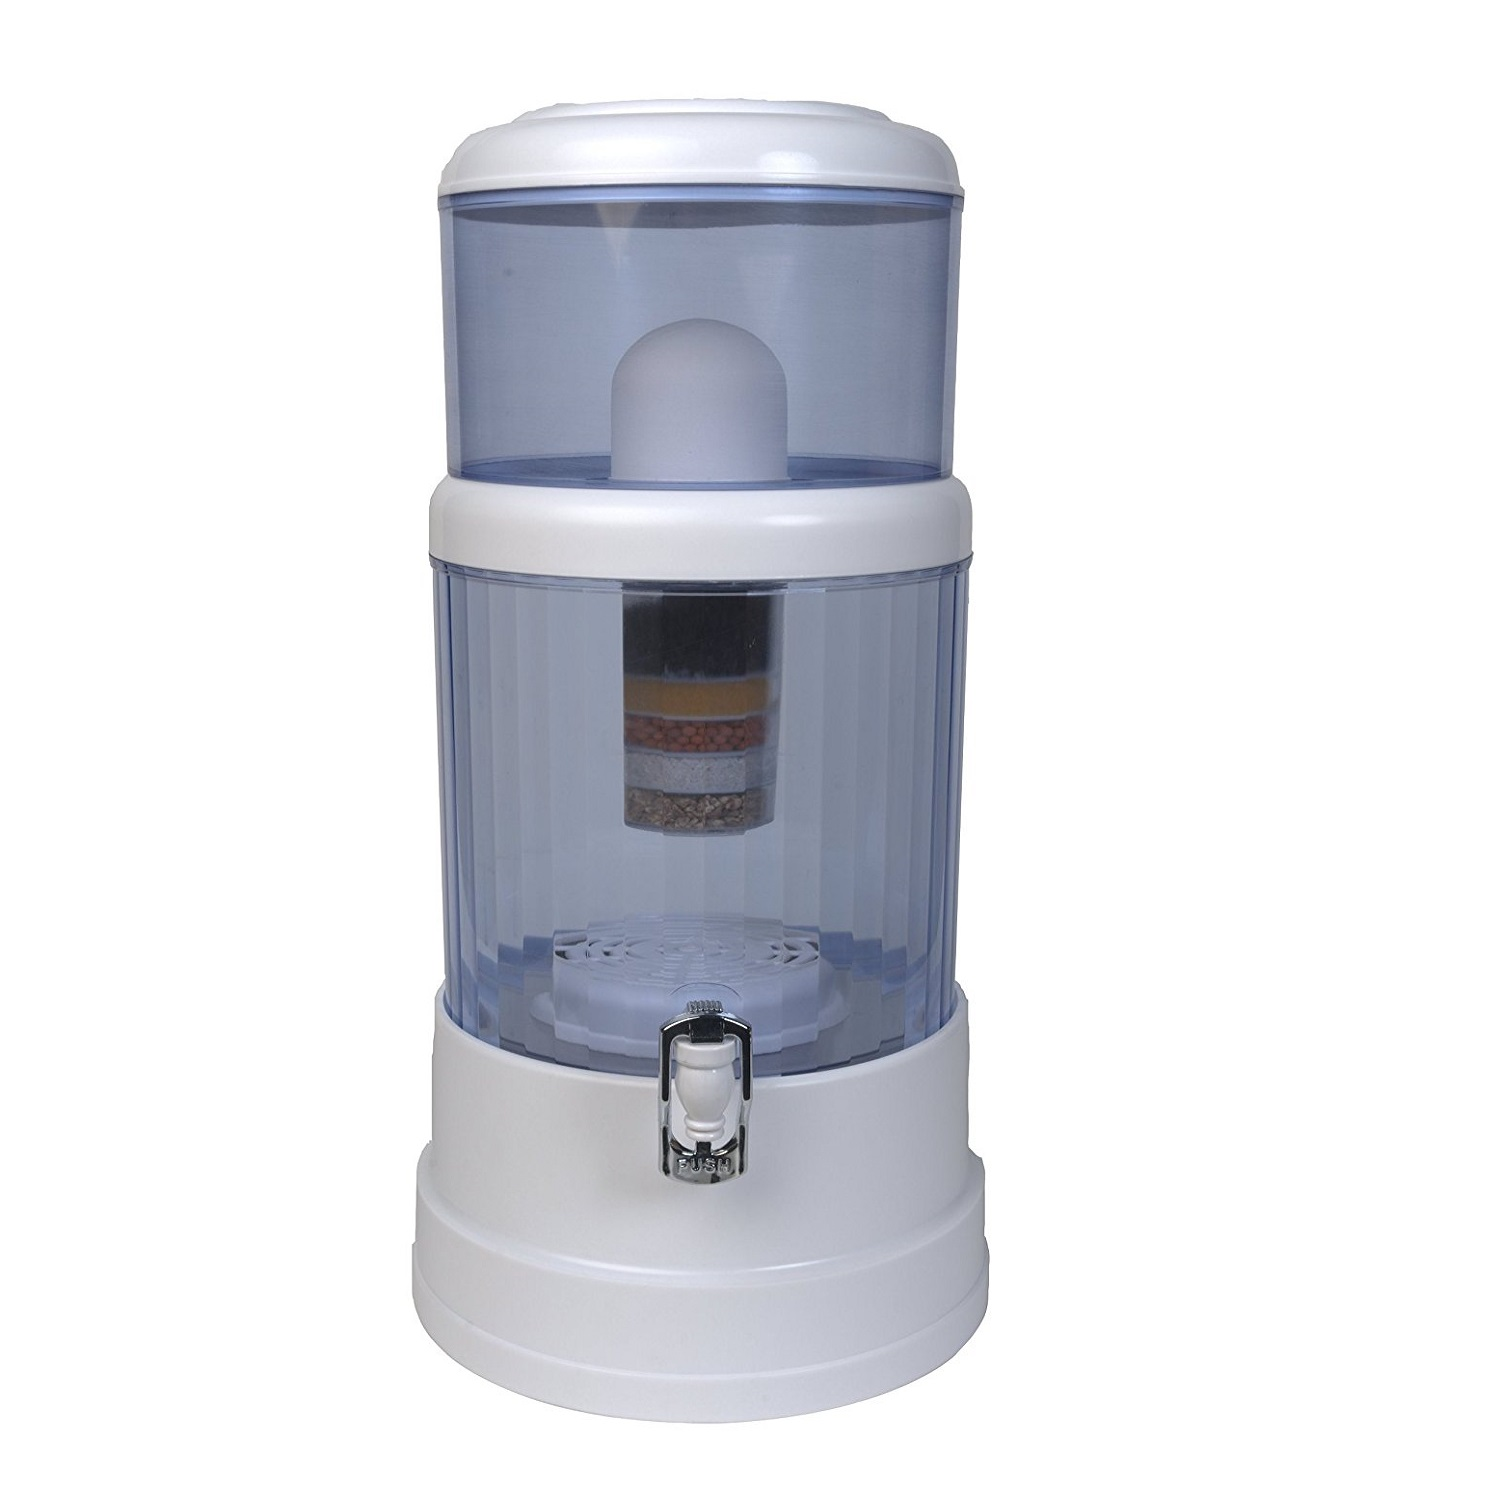 H2o Cypress Countertop Water Filtration System